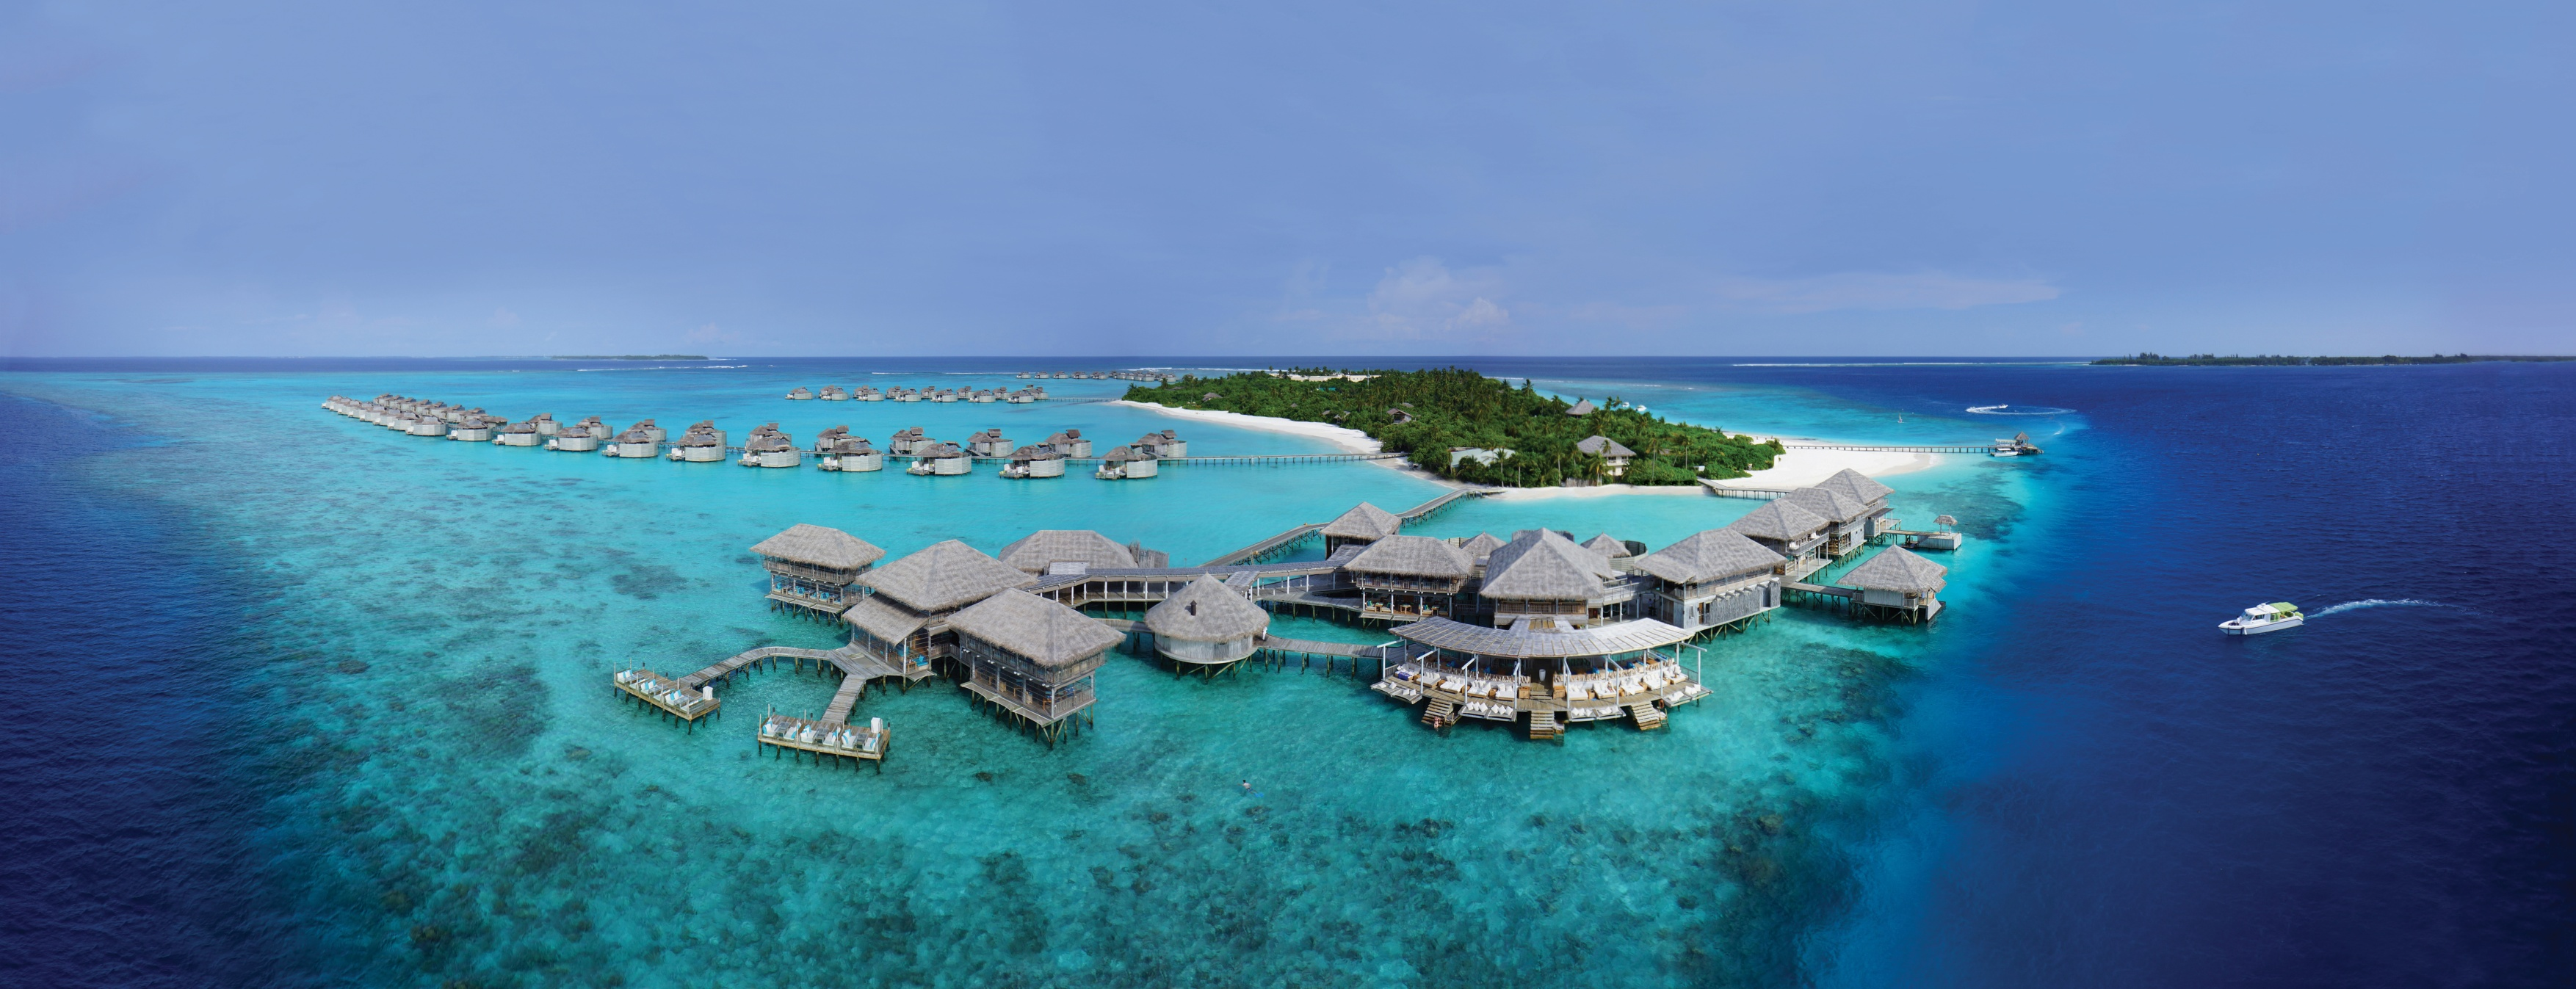 Six_Senses_Laamu